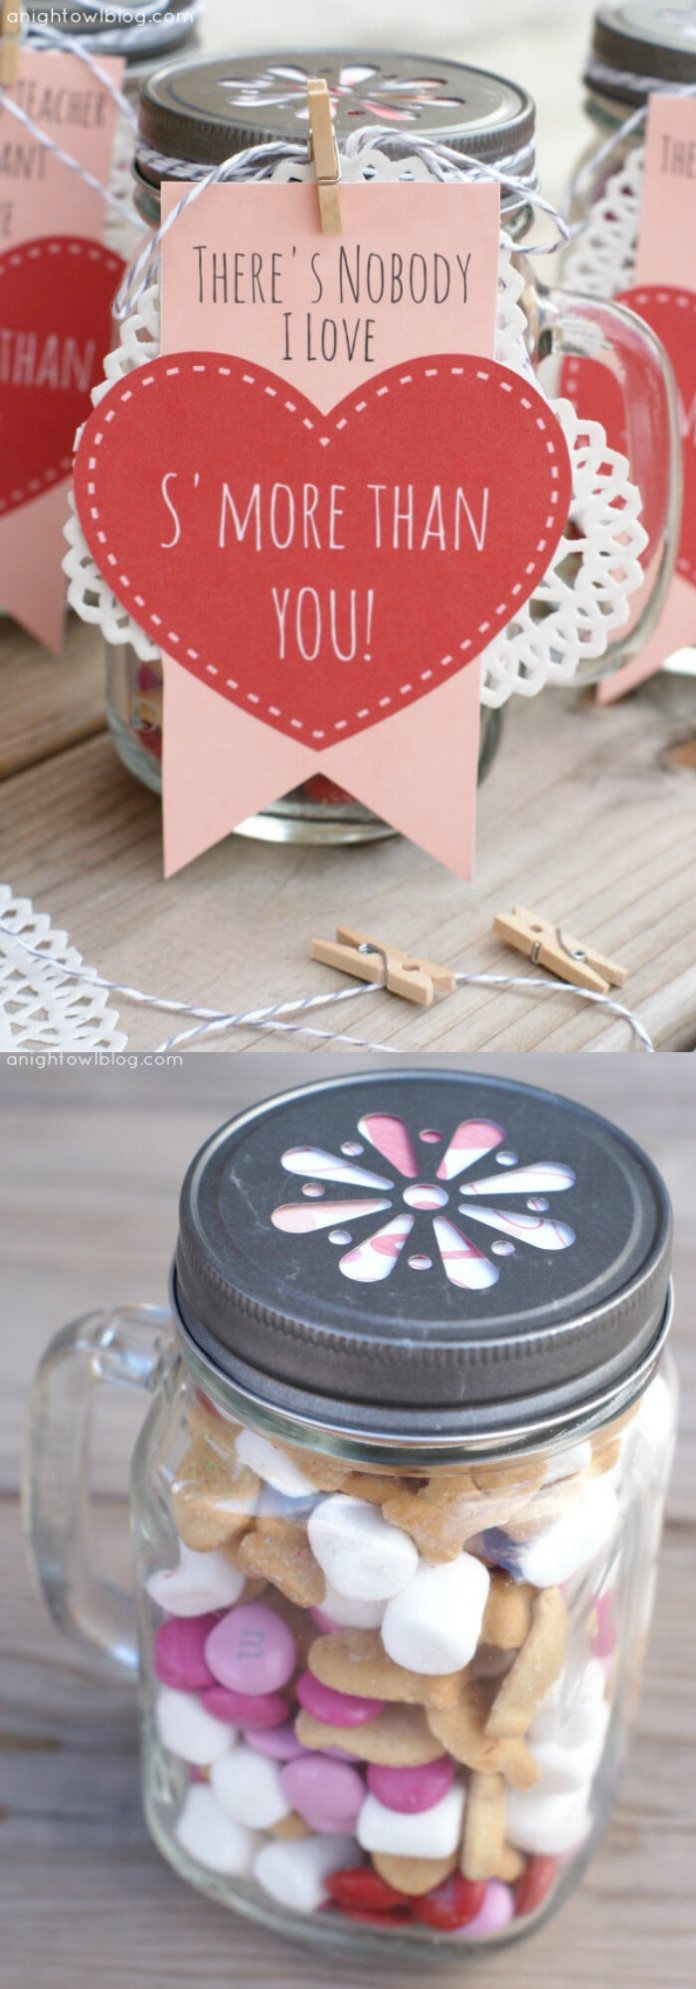 S'mores Valentines | DIY Mason Jar Gift Ideas For Valentine's Day | FarmFoodFamily.com